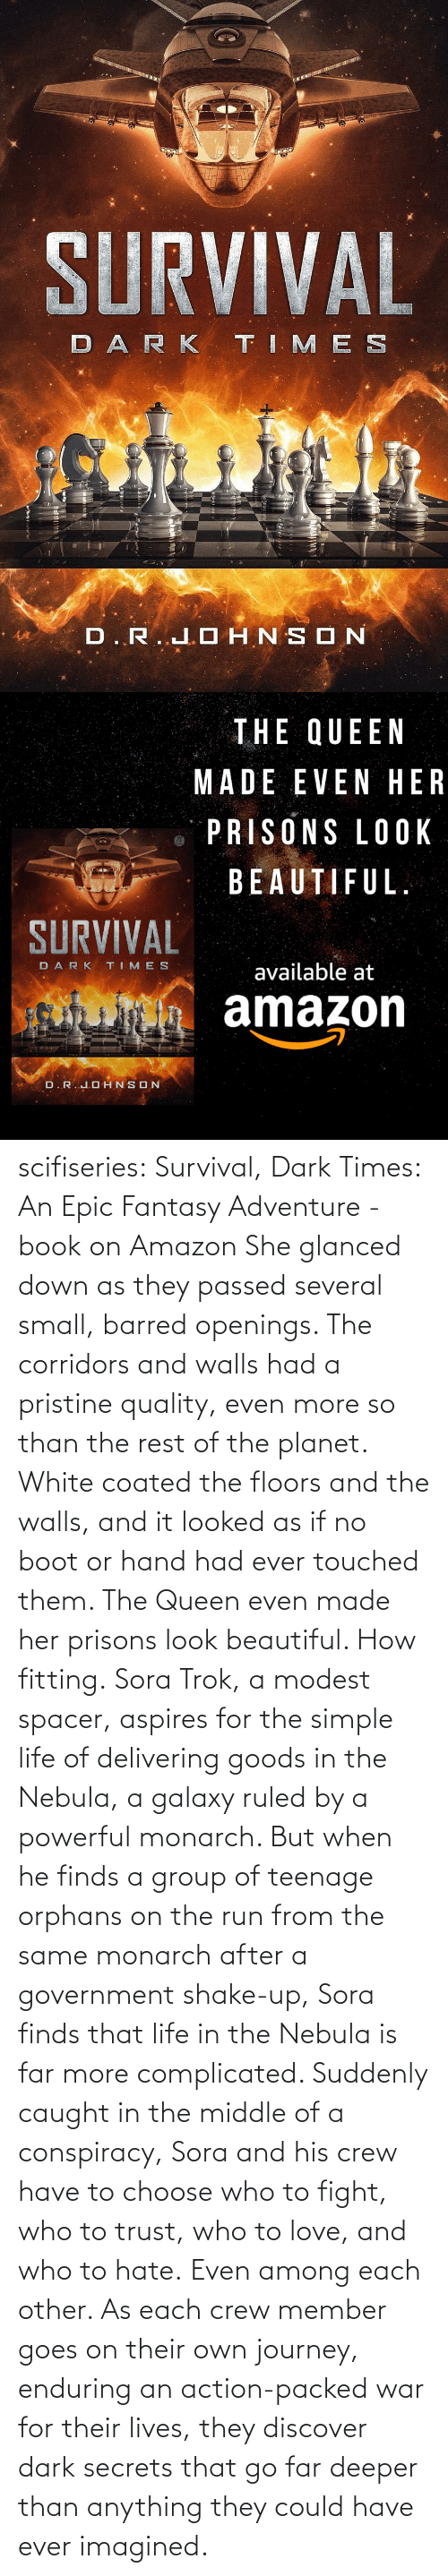 modest: scifiseries: Survival, Dark Times: An Epic Fantasy Adventure - book on Amazon  She glanced down as they  passed several small, barred openings. The corridors and walls had a  pristine quality, even more so than the rest of the planet. White coated  the floors and the walls, and it looked as if no boot or hand had ever  touched them.  The Queen even made her prisons look beautiful.  How fitting. Sora  Trok, a modest spacer, aspires for the simple life of delivering goods  in the Nebula, a galaxy ruled by a powerful monarch. But when he finds a  group of teenage orphans on the run from the same monarch after a  government shake-up, Sora finds that life in the Nebula is far more complicated.  Suddenly  caught in the middle of a conspiracy, Sora and his crew have to choose  who to fight, who to trust, who to love, and who to hate. Even among each other.  As  each crew member goes on their own journey, enduring an action-packed  war for their lives, they discover dark secrets that go far deeper than  anything they could have ever imagined.